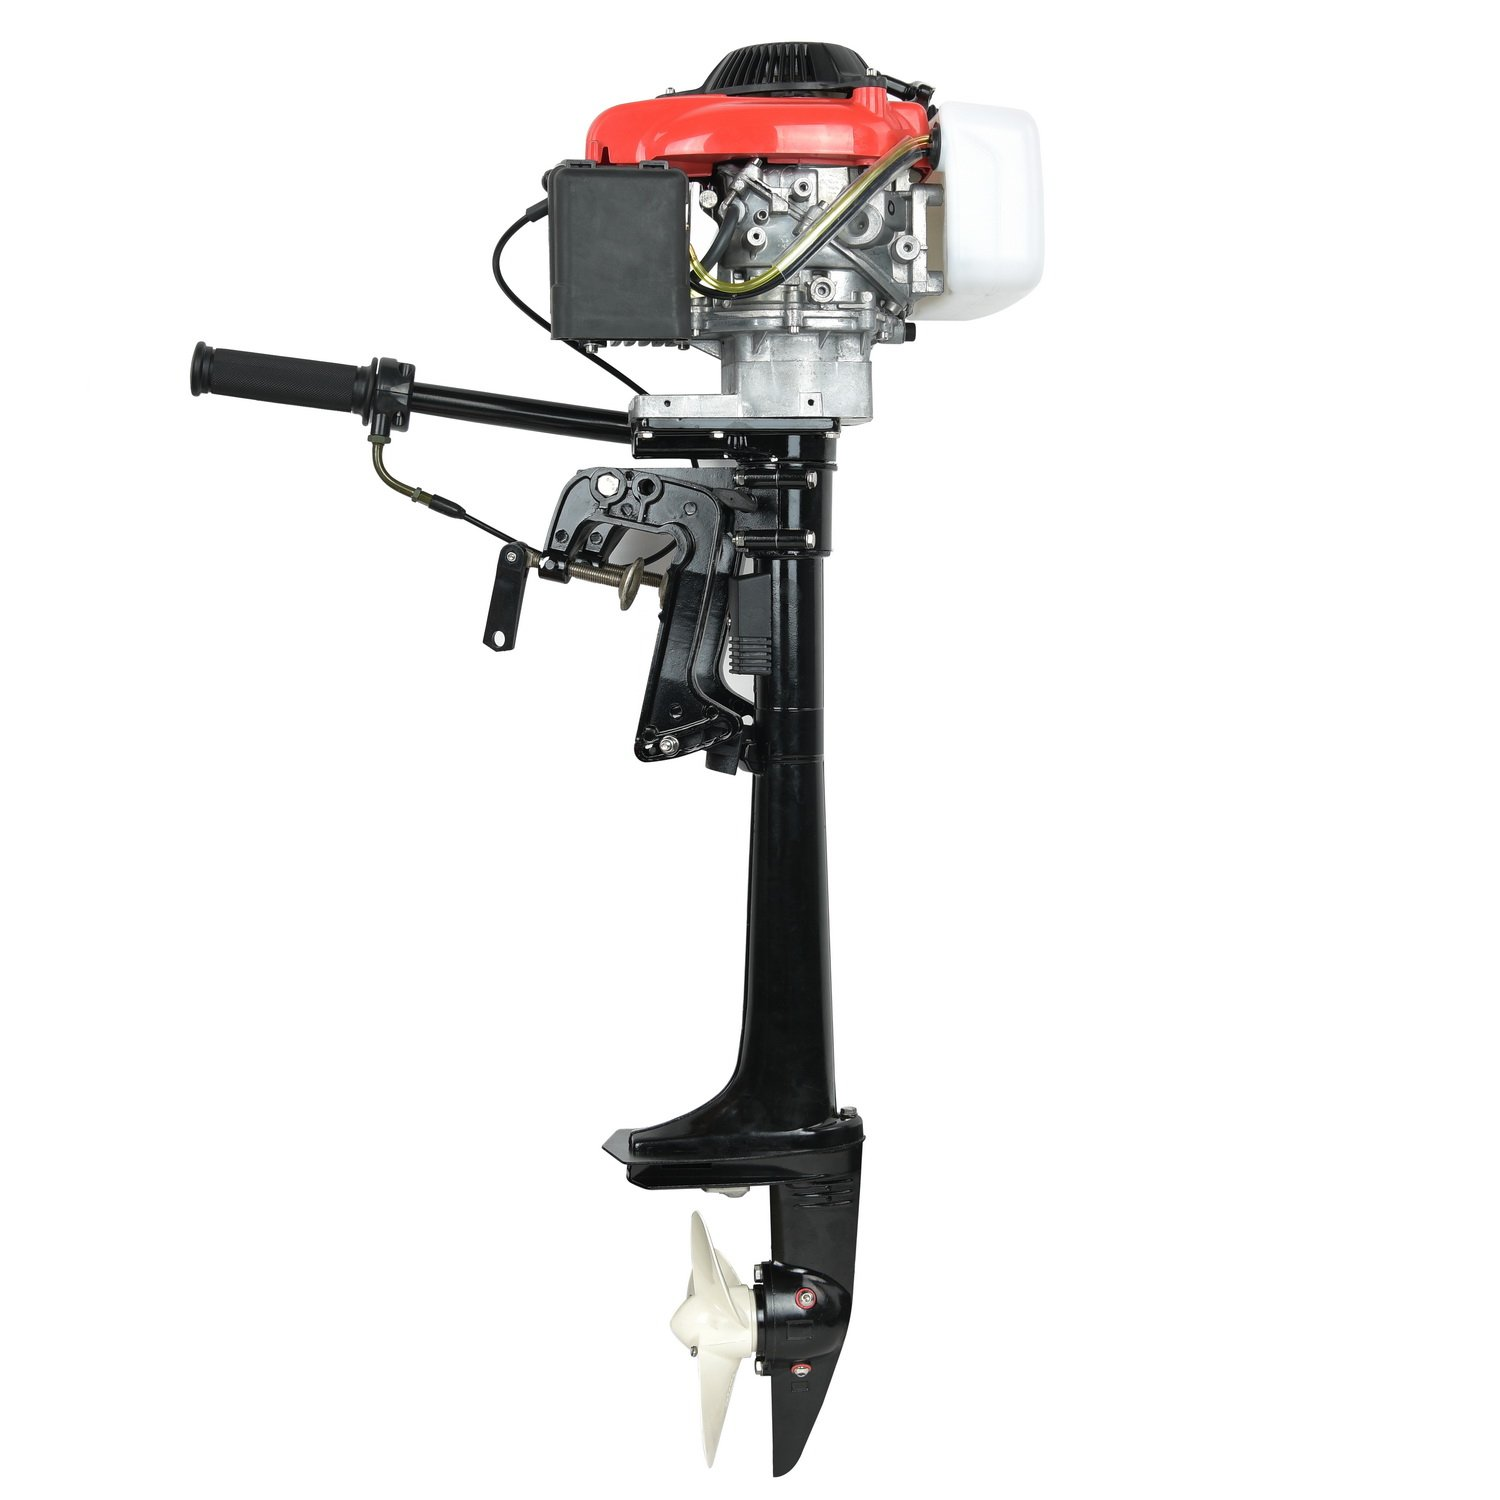 HAFIY 4HP 4 Stroke Heavy Duty Outboard Motor 38CC Boat Engine with Air Cooling System Inflatable Fishing Boat Kayak Canoe Leadallway TM by HAFIY